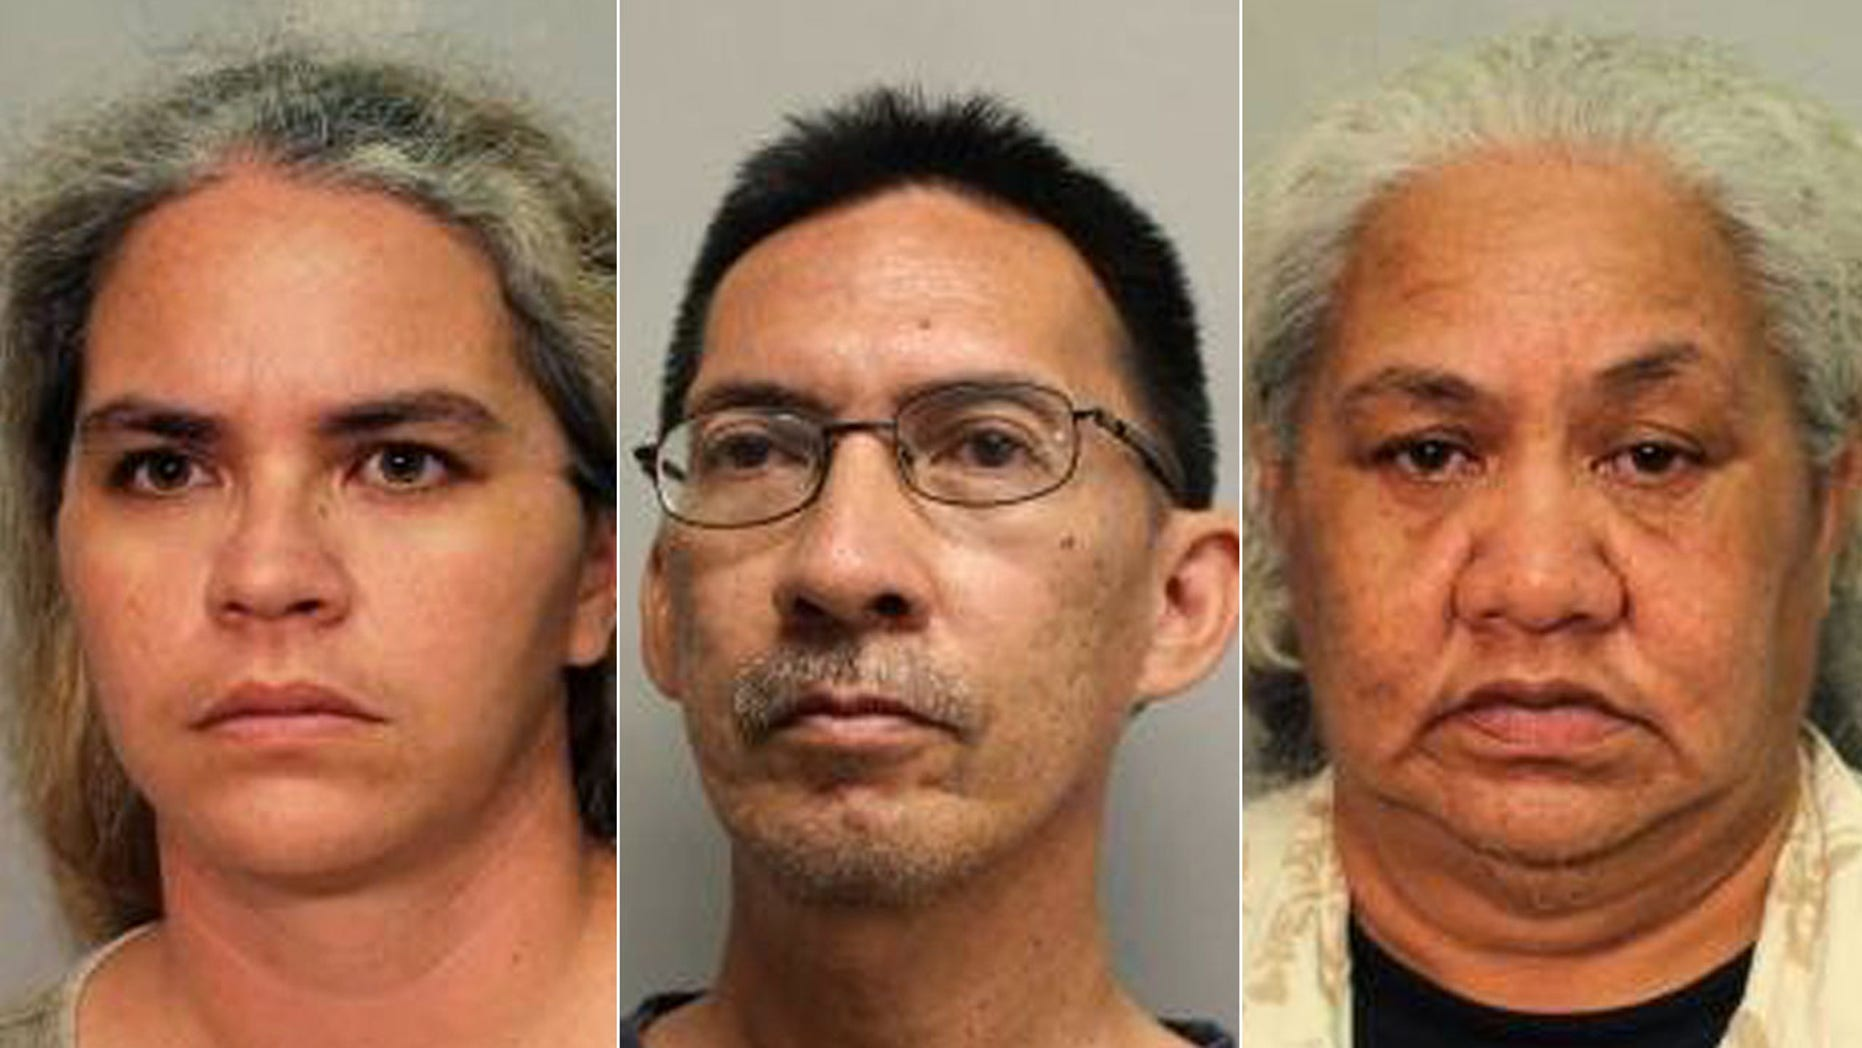 This booking photo released by Hawai'i Police Department shows Tiffany Stone (left), Kevin Lehano (center) and Henrietta Stone (right) on Friday, July 14, 2017, on Hawaii's Big Island.